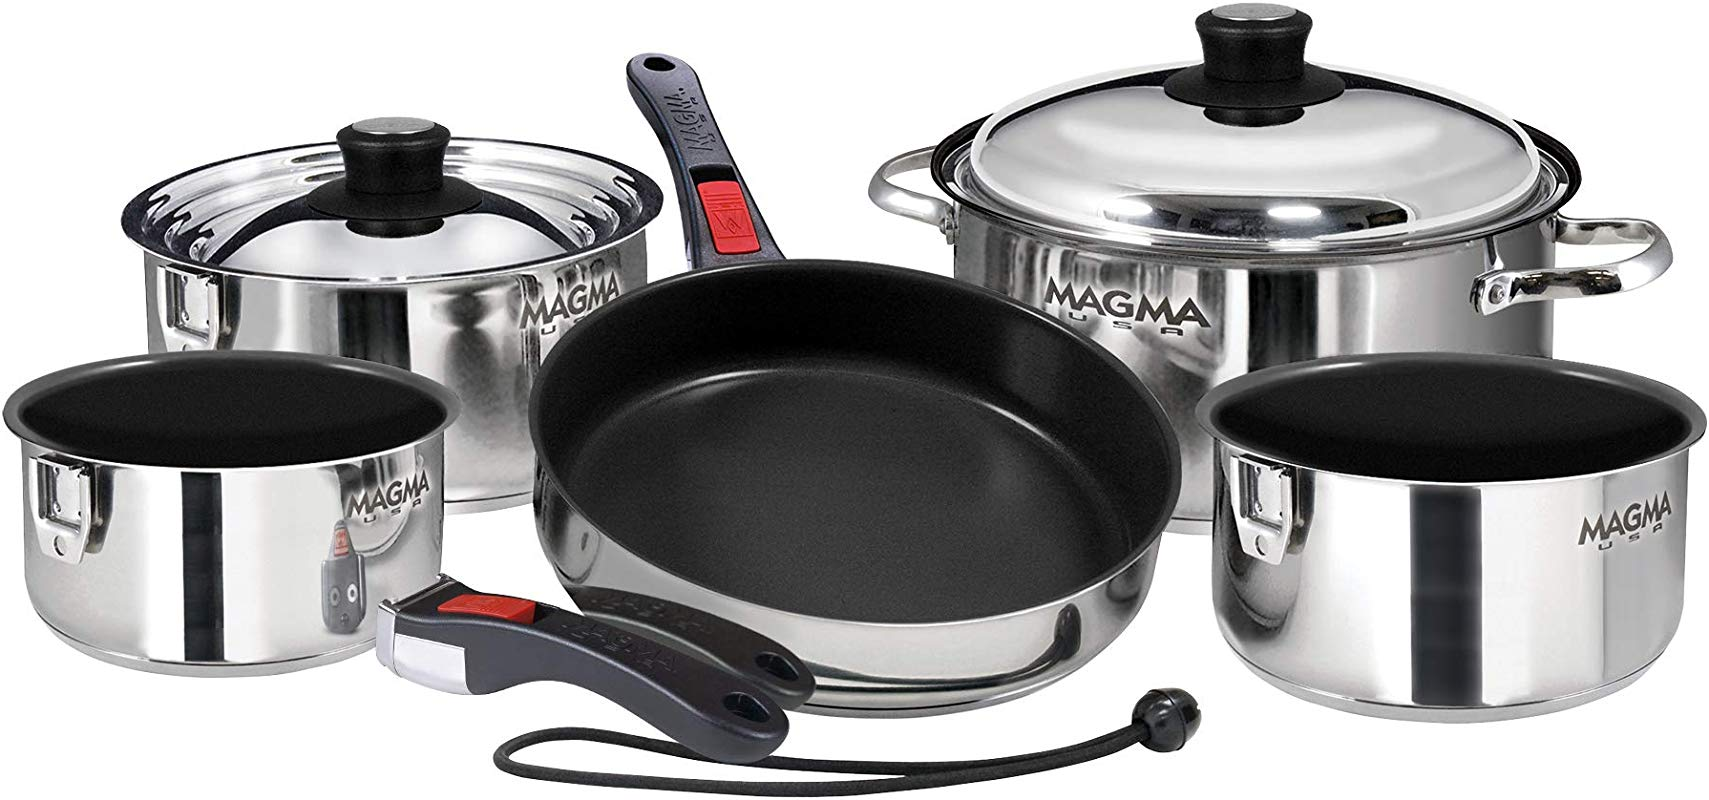 Magma Products A10 366 2 Gourmet Nesting Stainless Steel Cookware Set 10 Piece Ceramica Non Stick